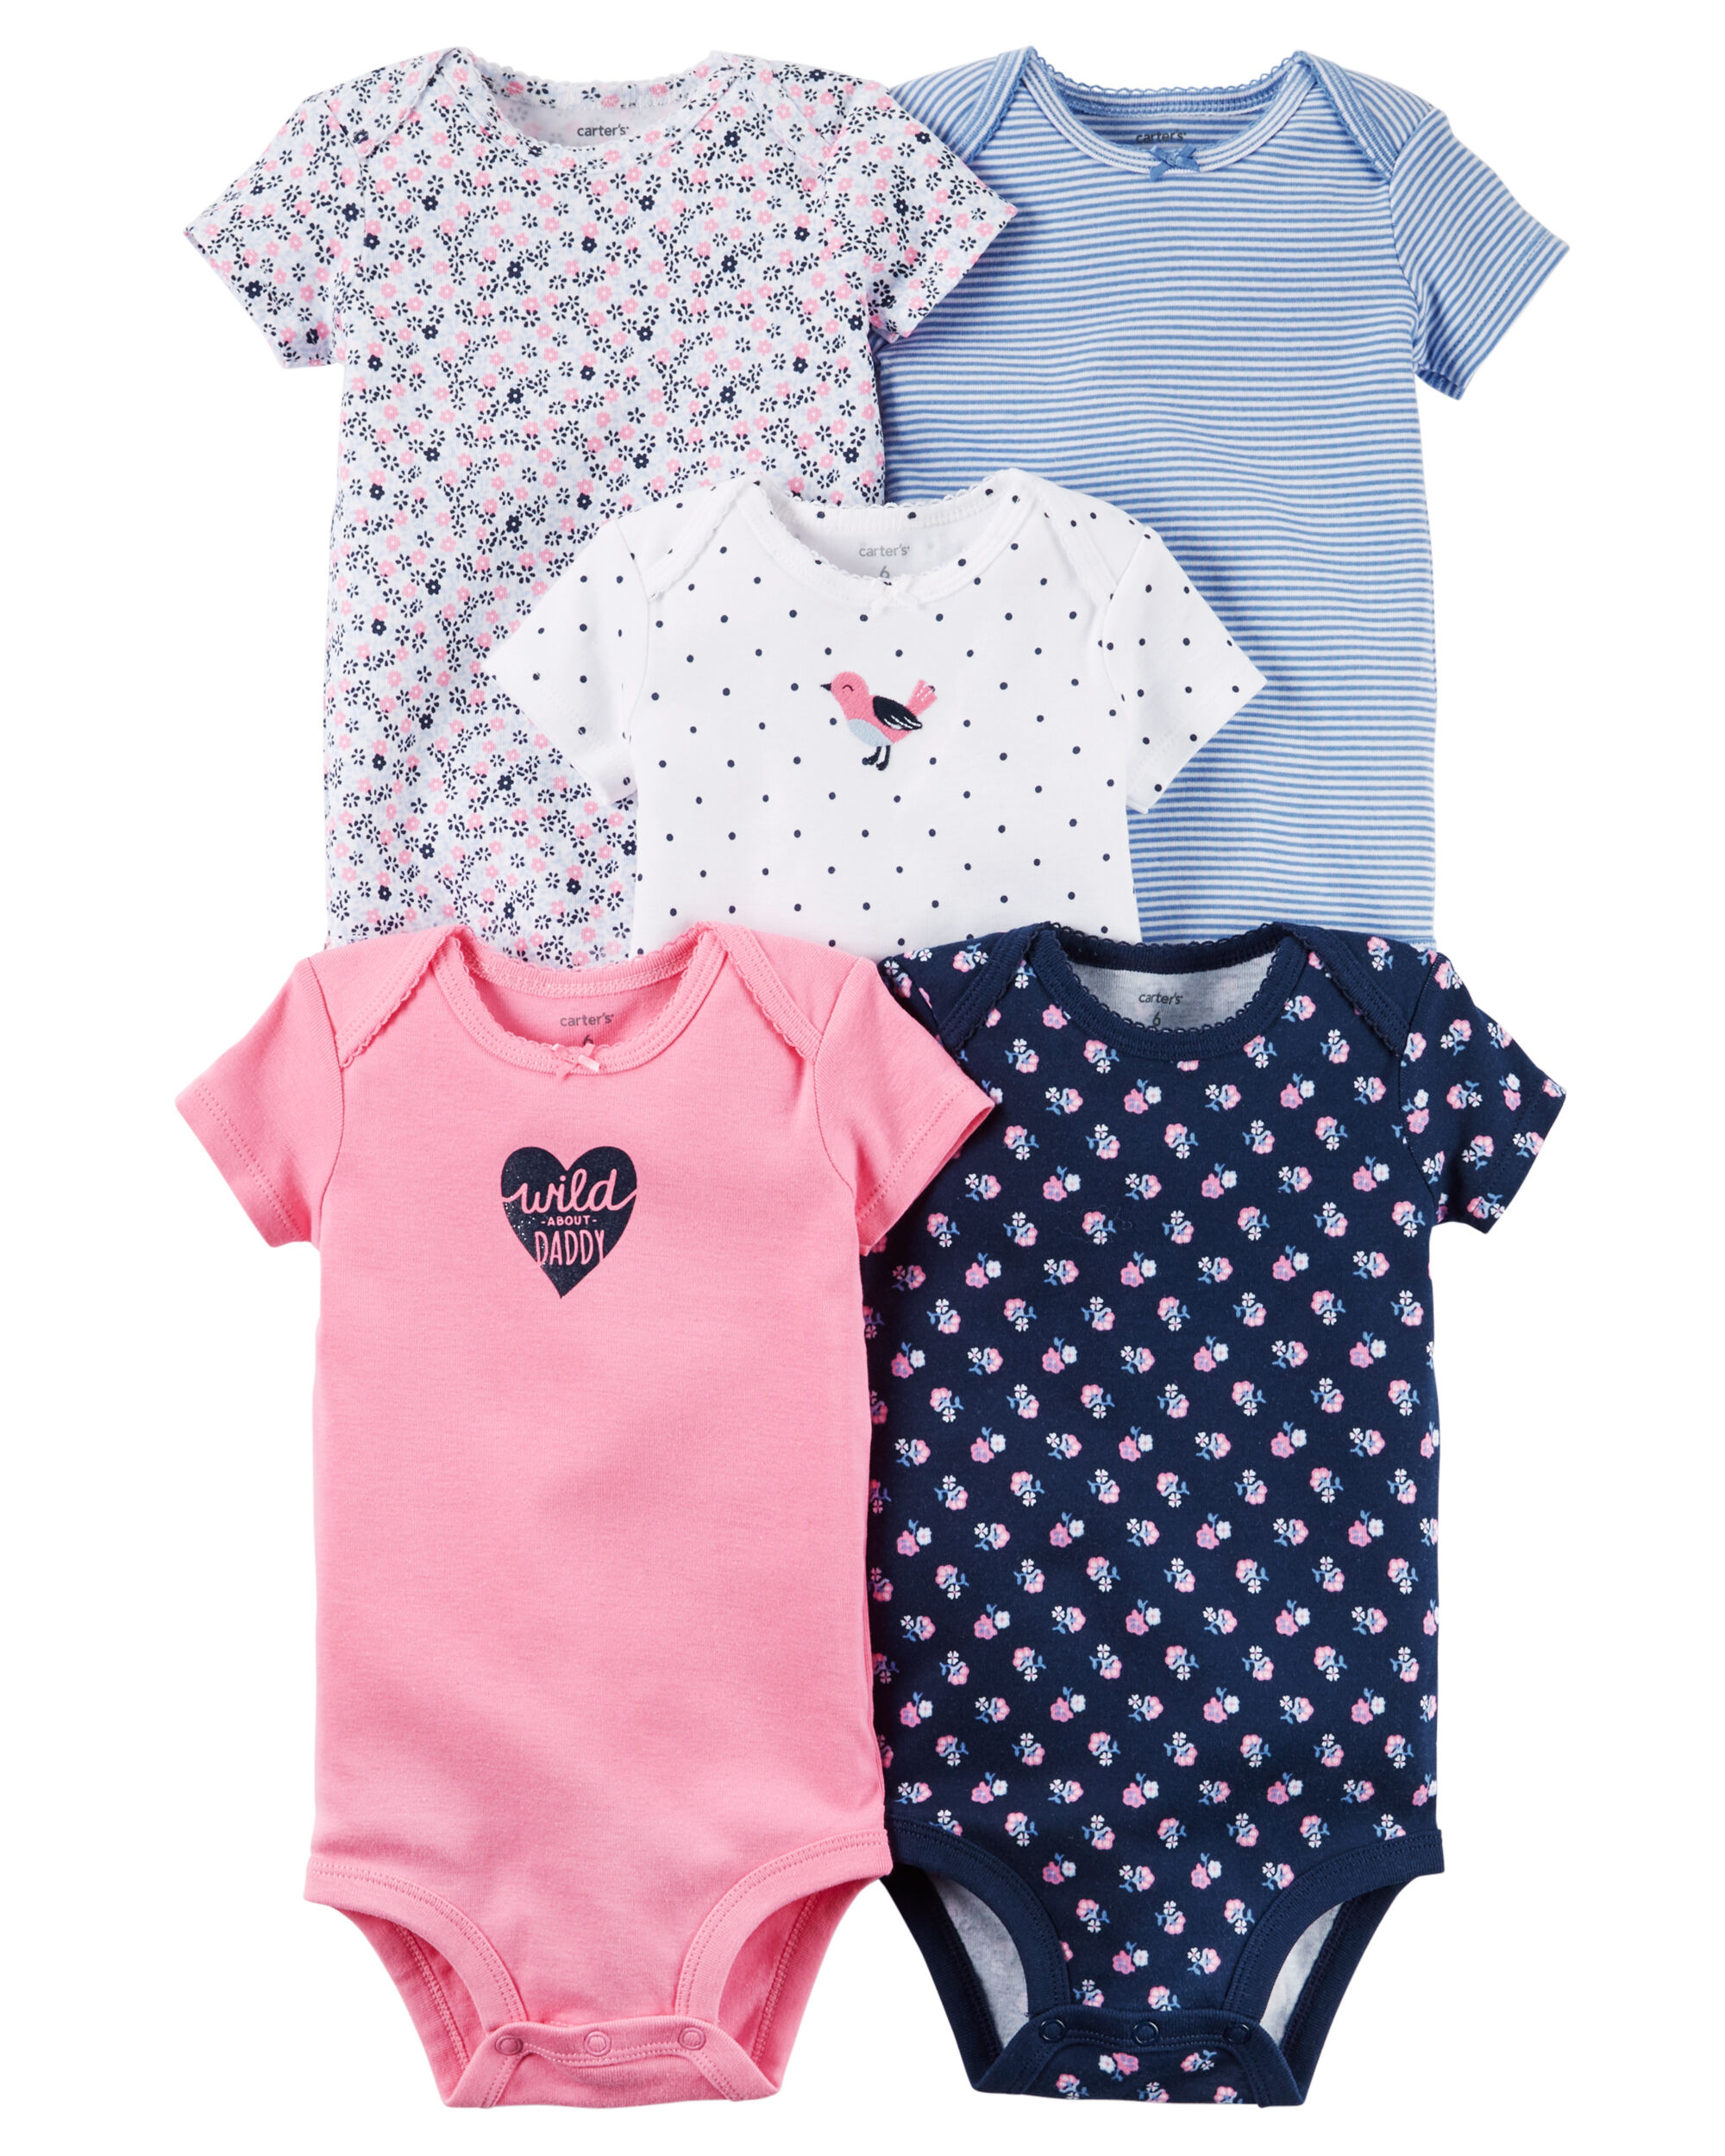 5 Pack Original Bodysuits Carters Com